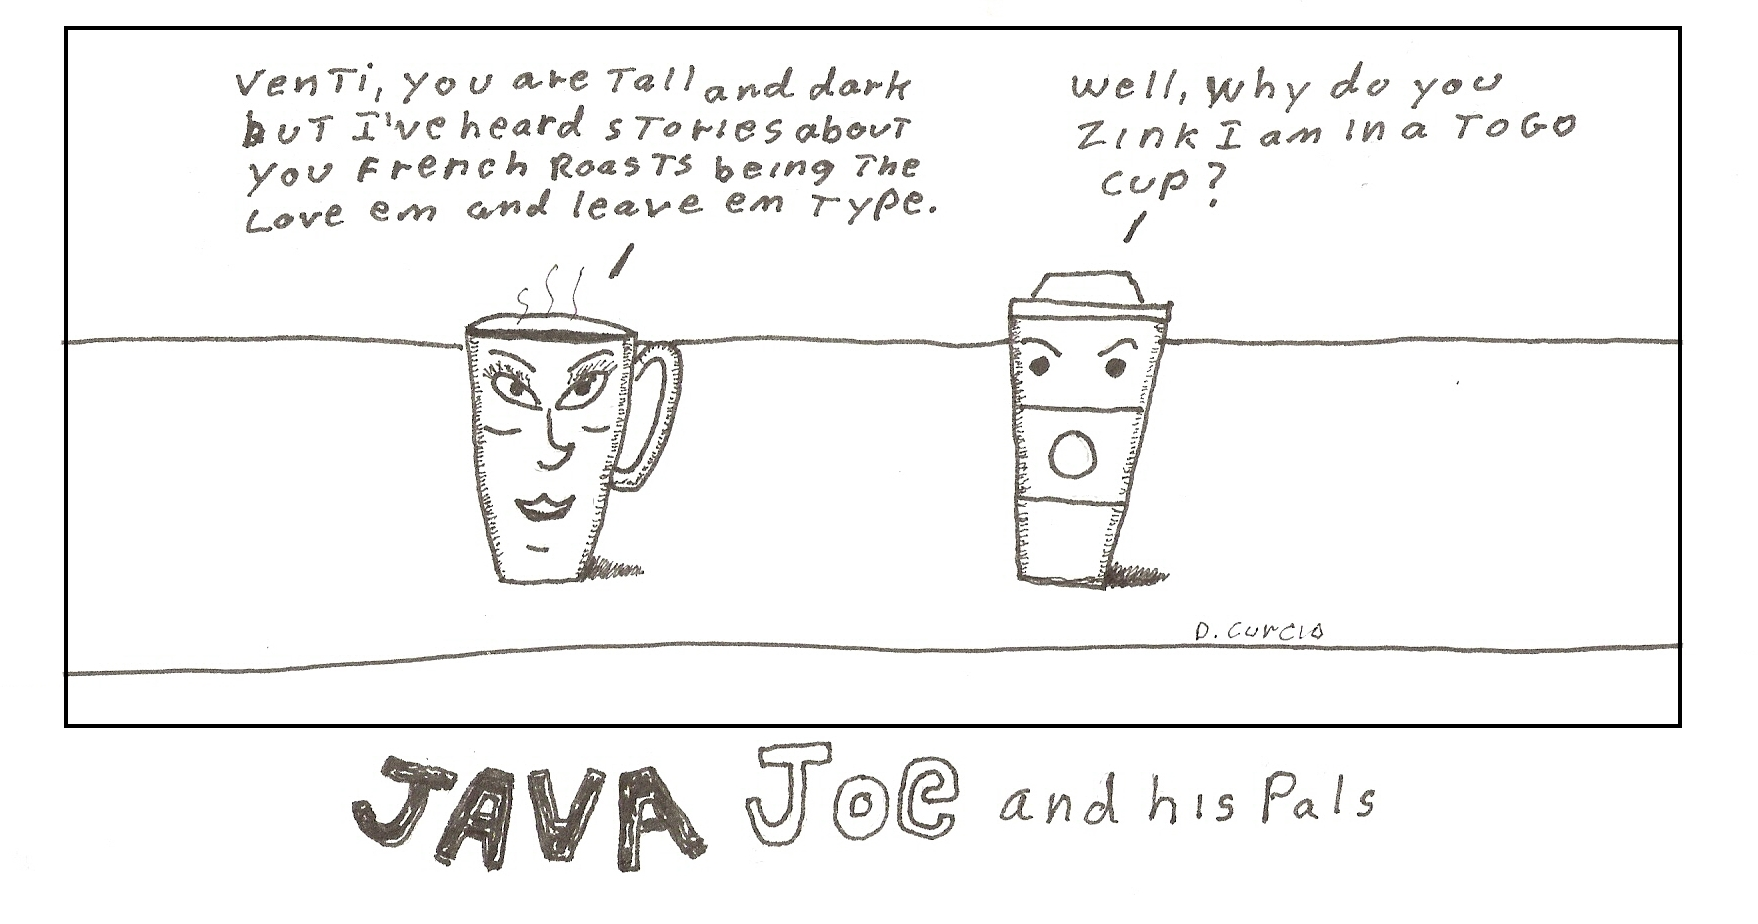 Java Joe Venti 5 End